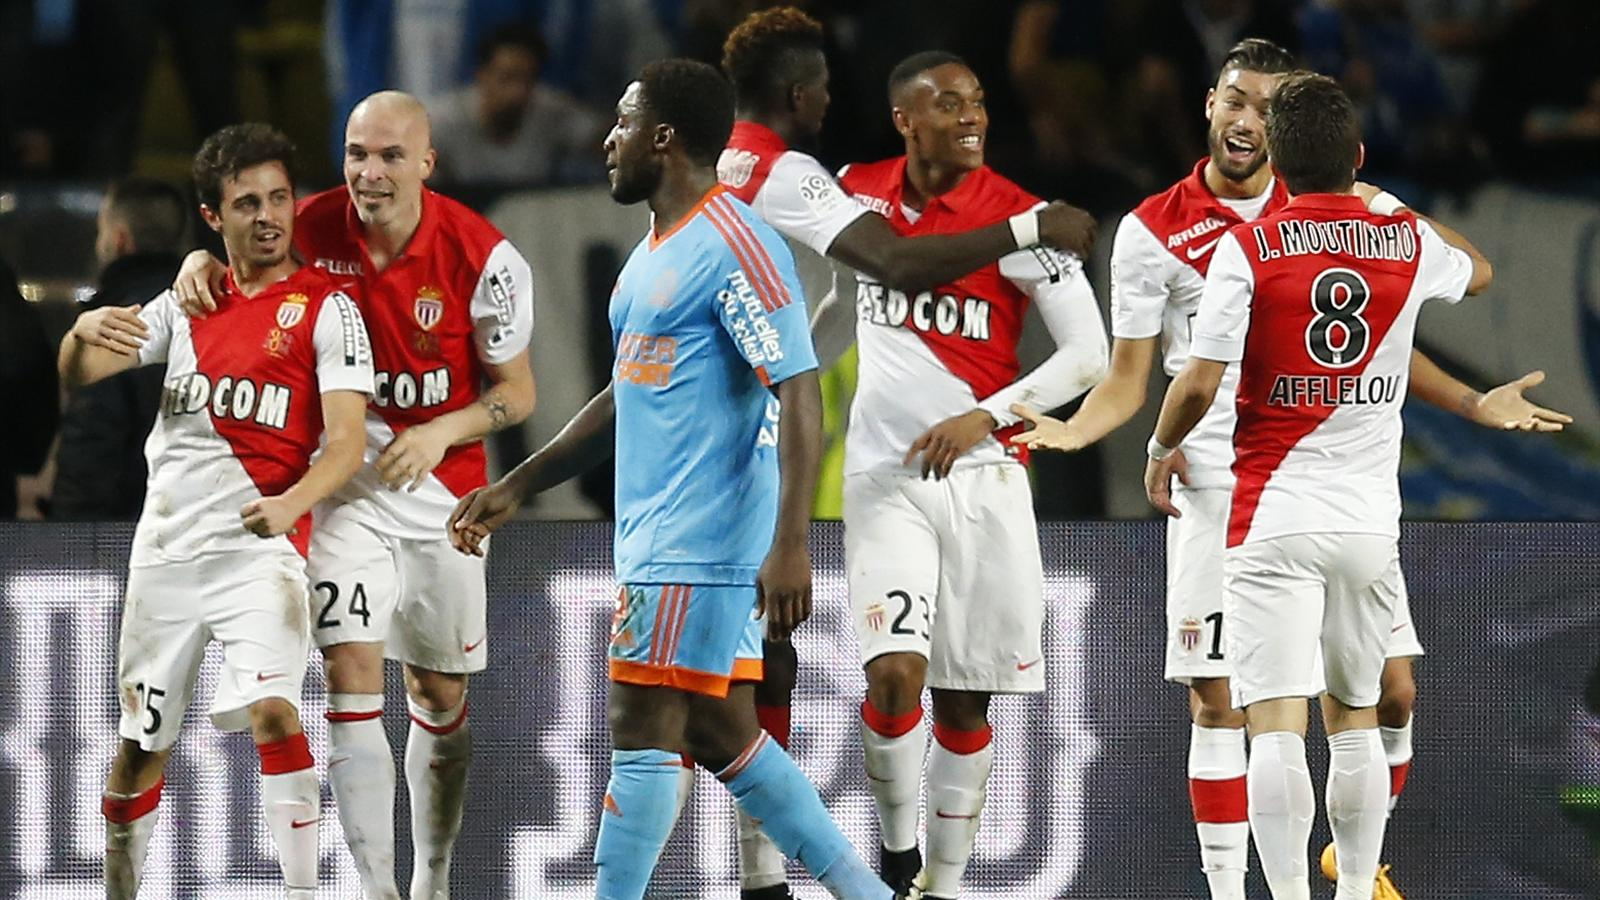 Video: Monaco vs Olympique Marseille